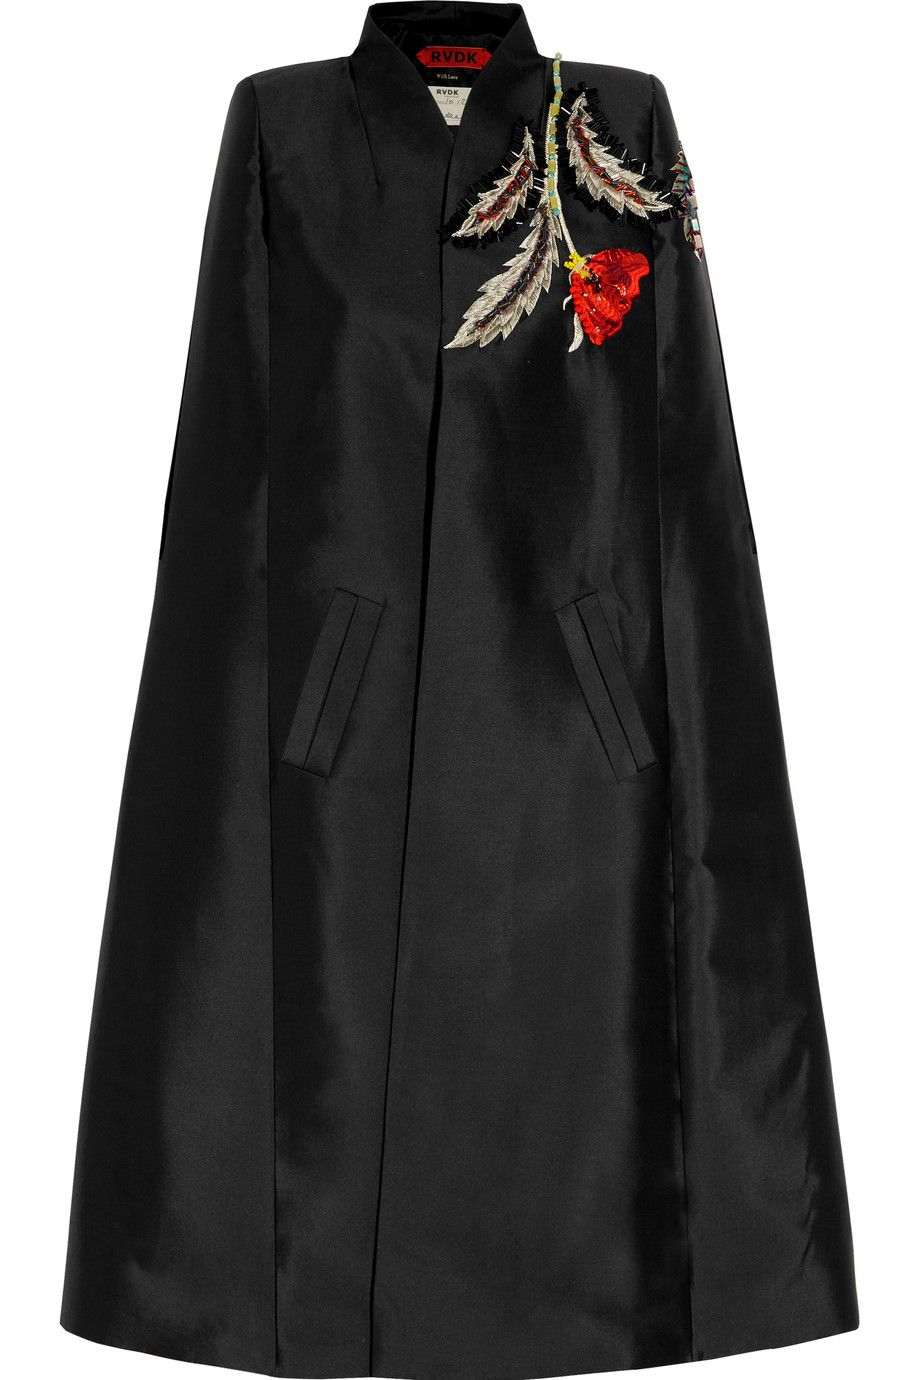 Shop on-sale Ronald Van Der Kemp Embroidered embellished duchesse silk-satin cape. Browse other discount designer Jackets & more on The Most Fashionable Fashion Outlet, THE OUTNET.COM